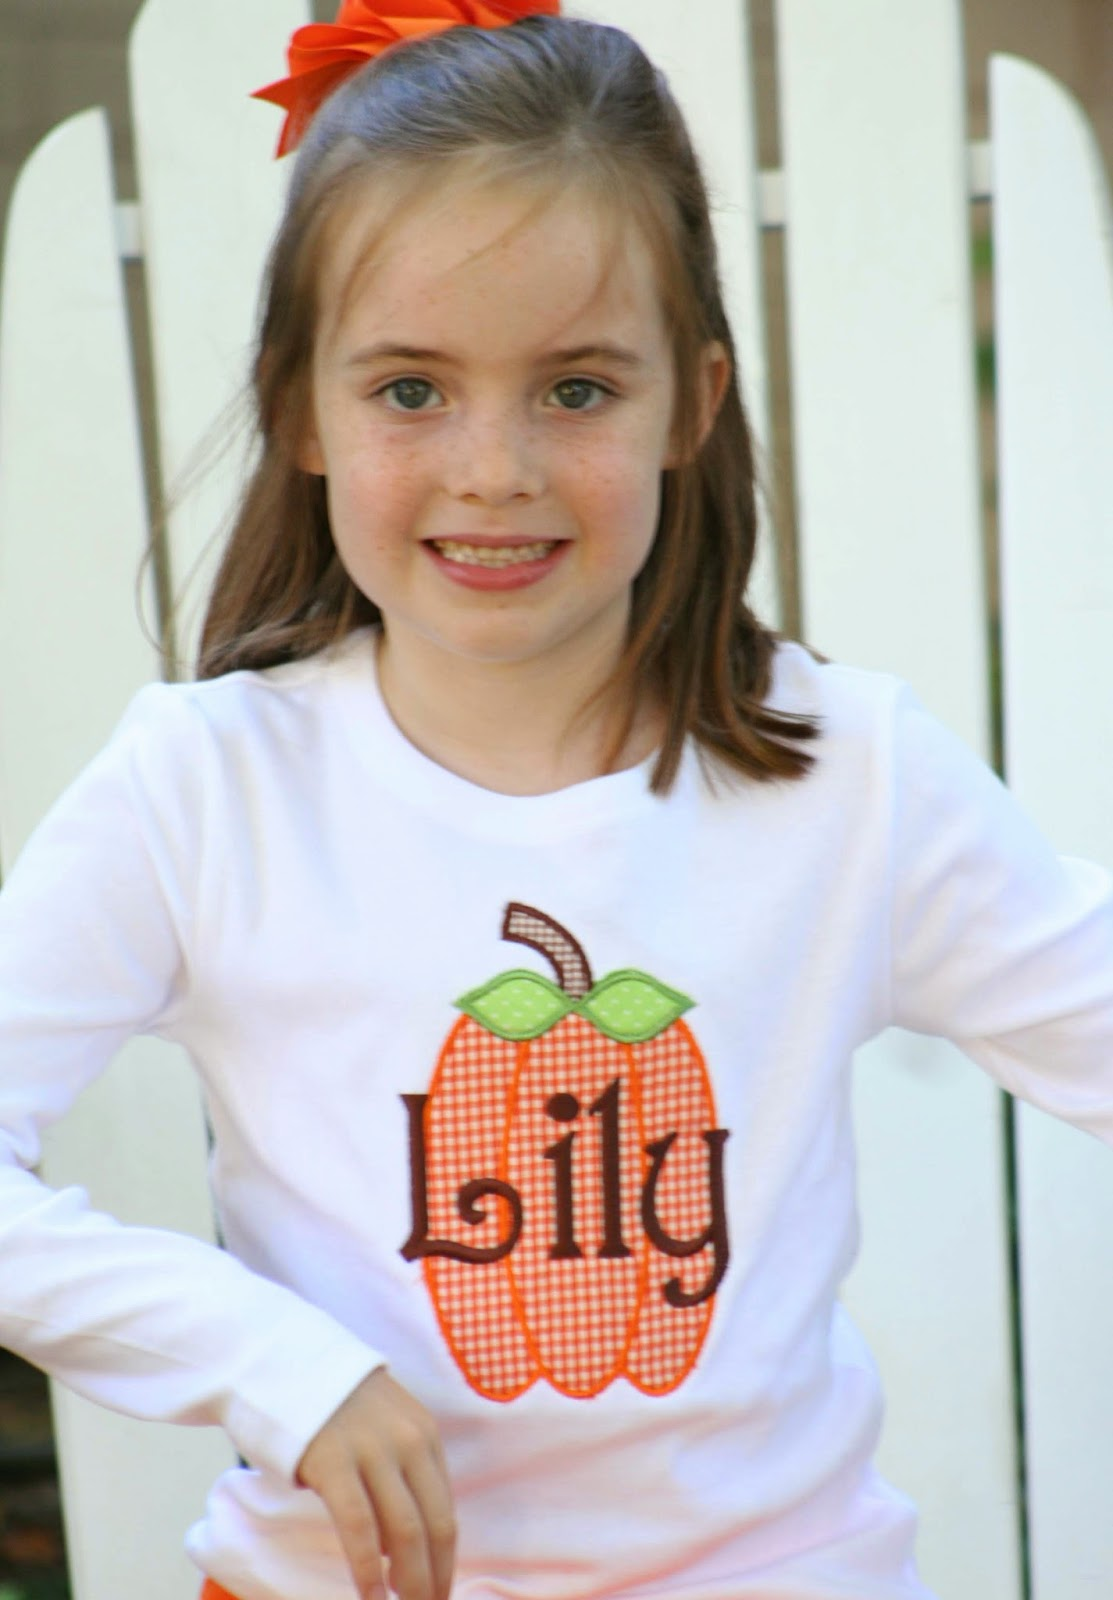 child's personalized pumpkin shirt